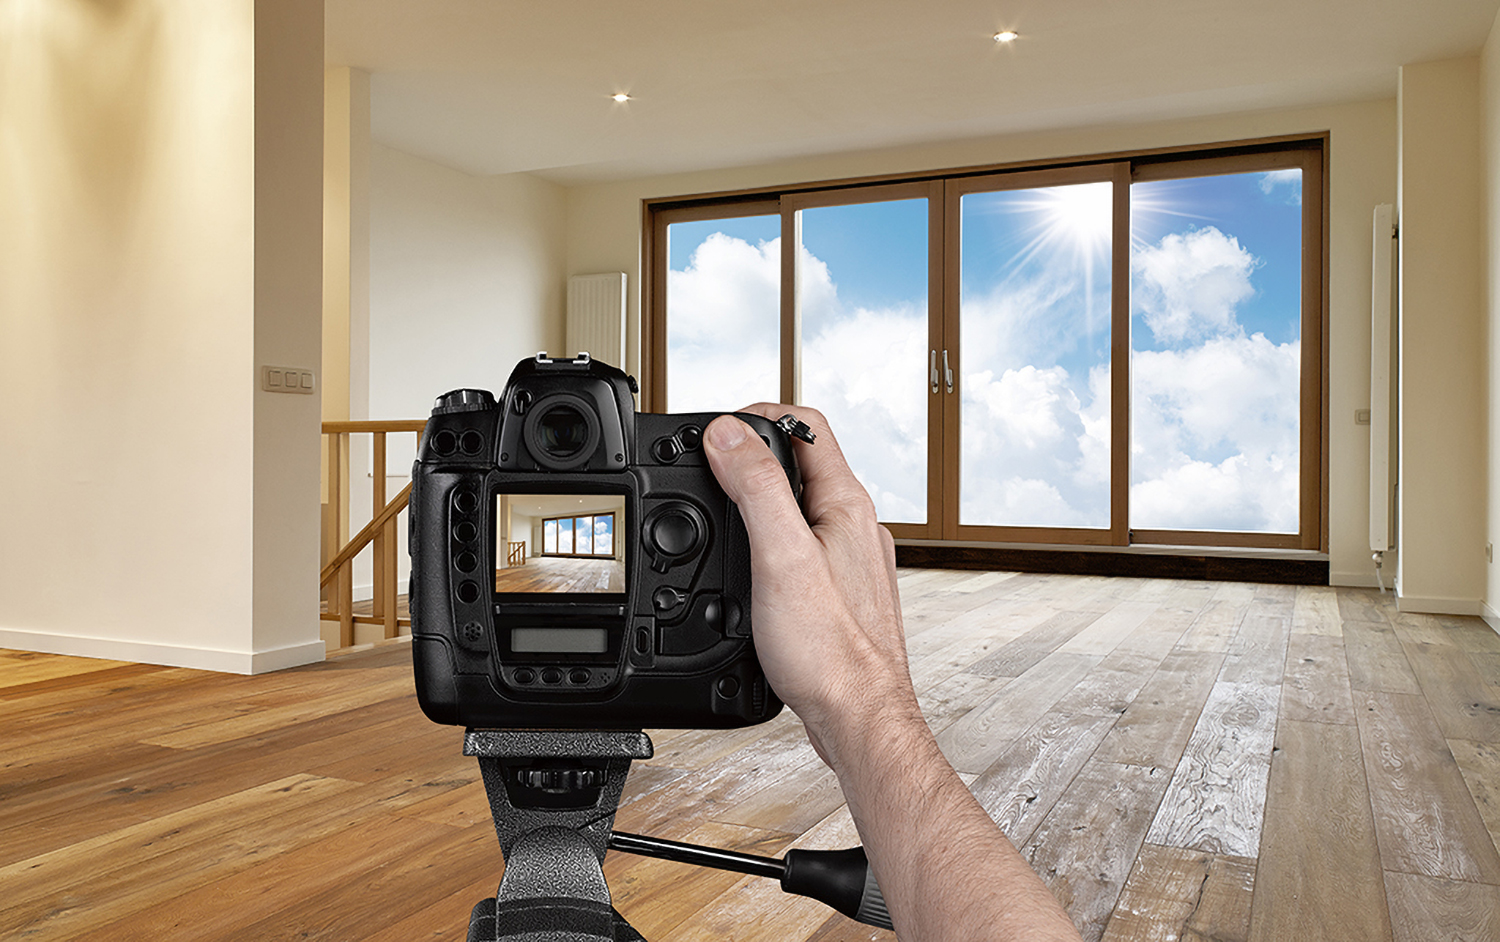 Photo of real estate photography